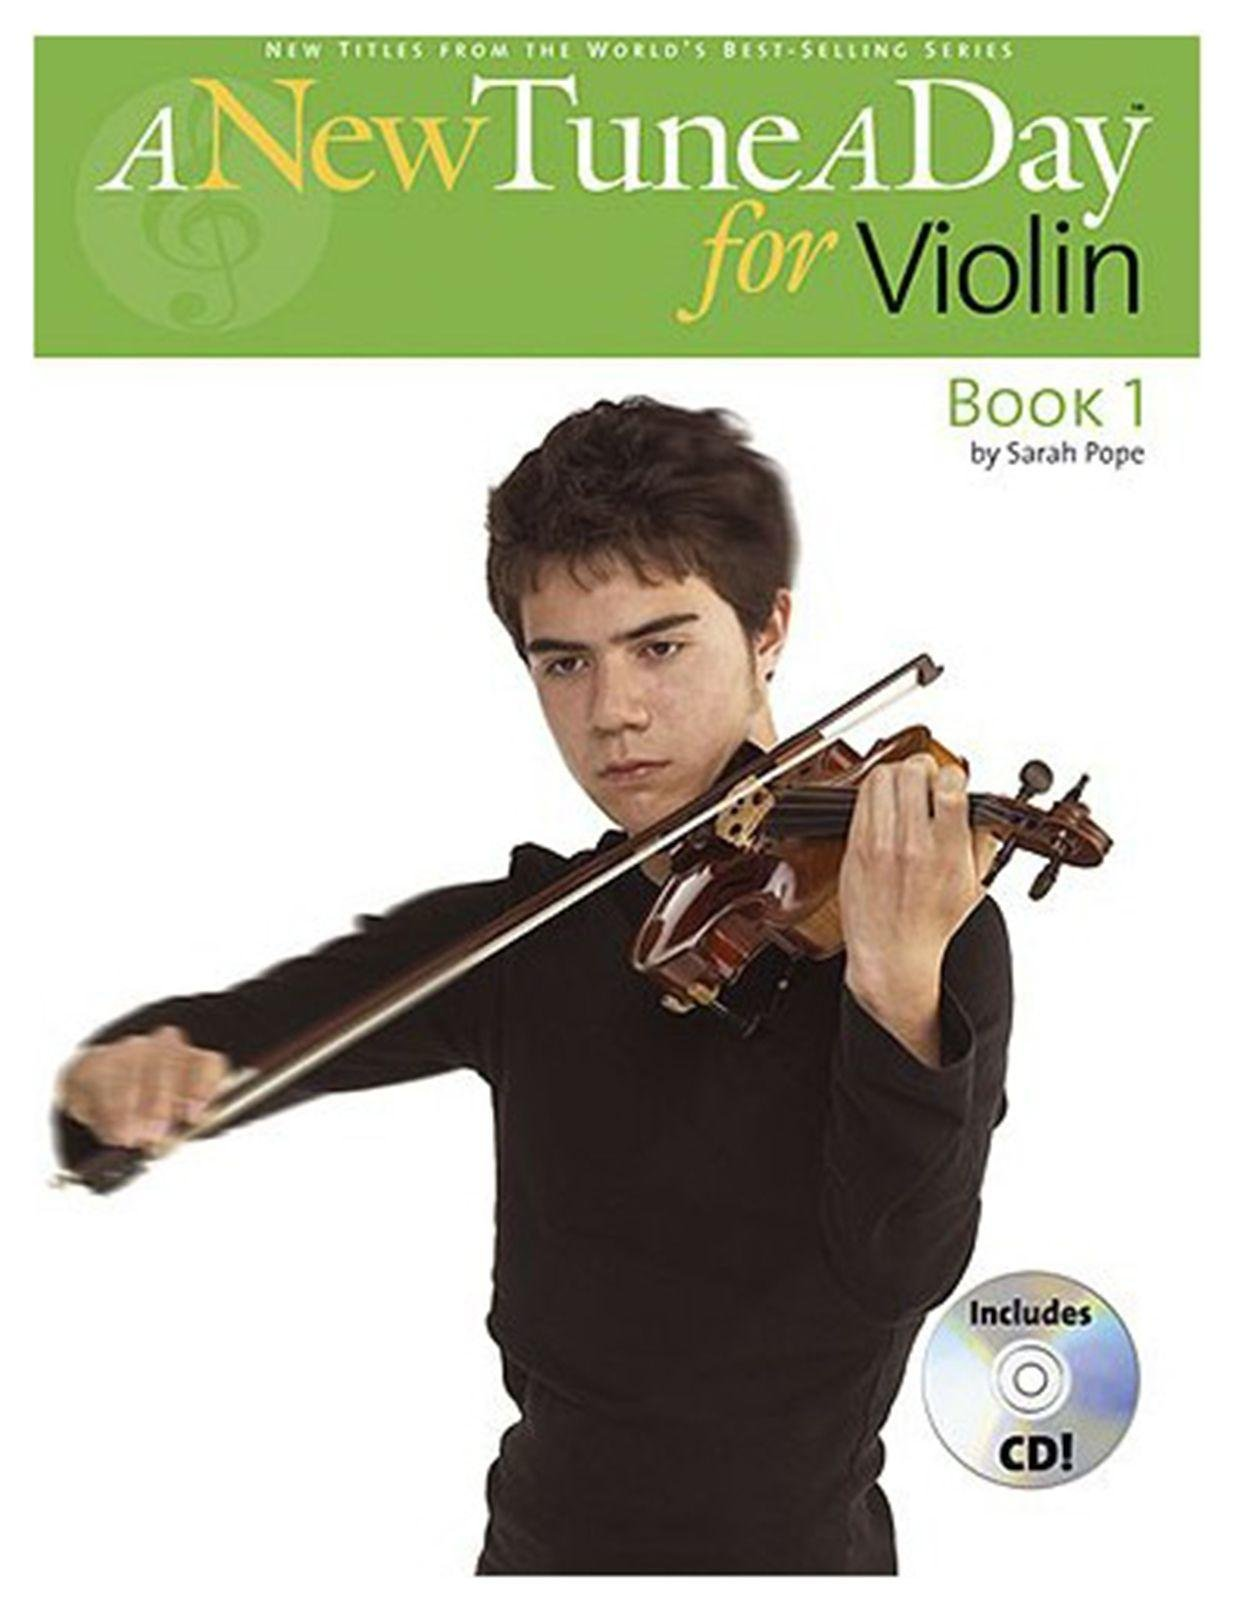 Image of Boston Music - A New Tune a Day for Violin - Book One